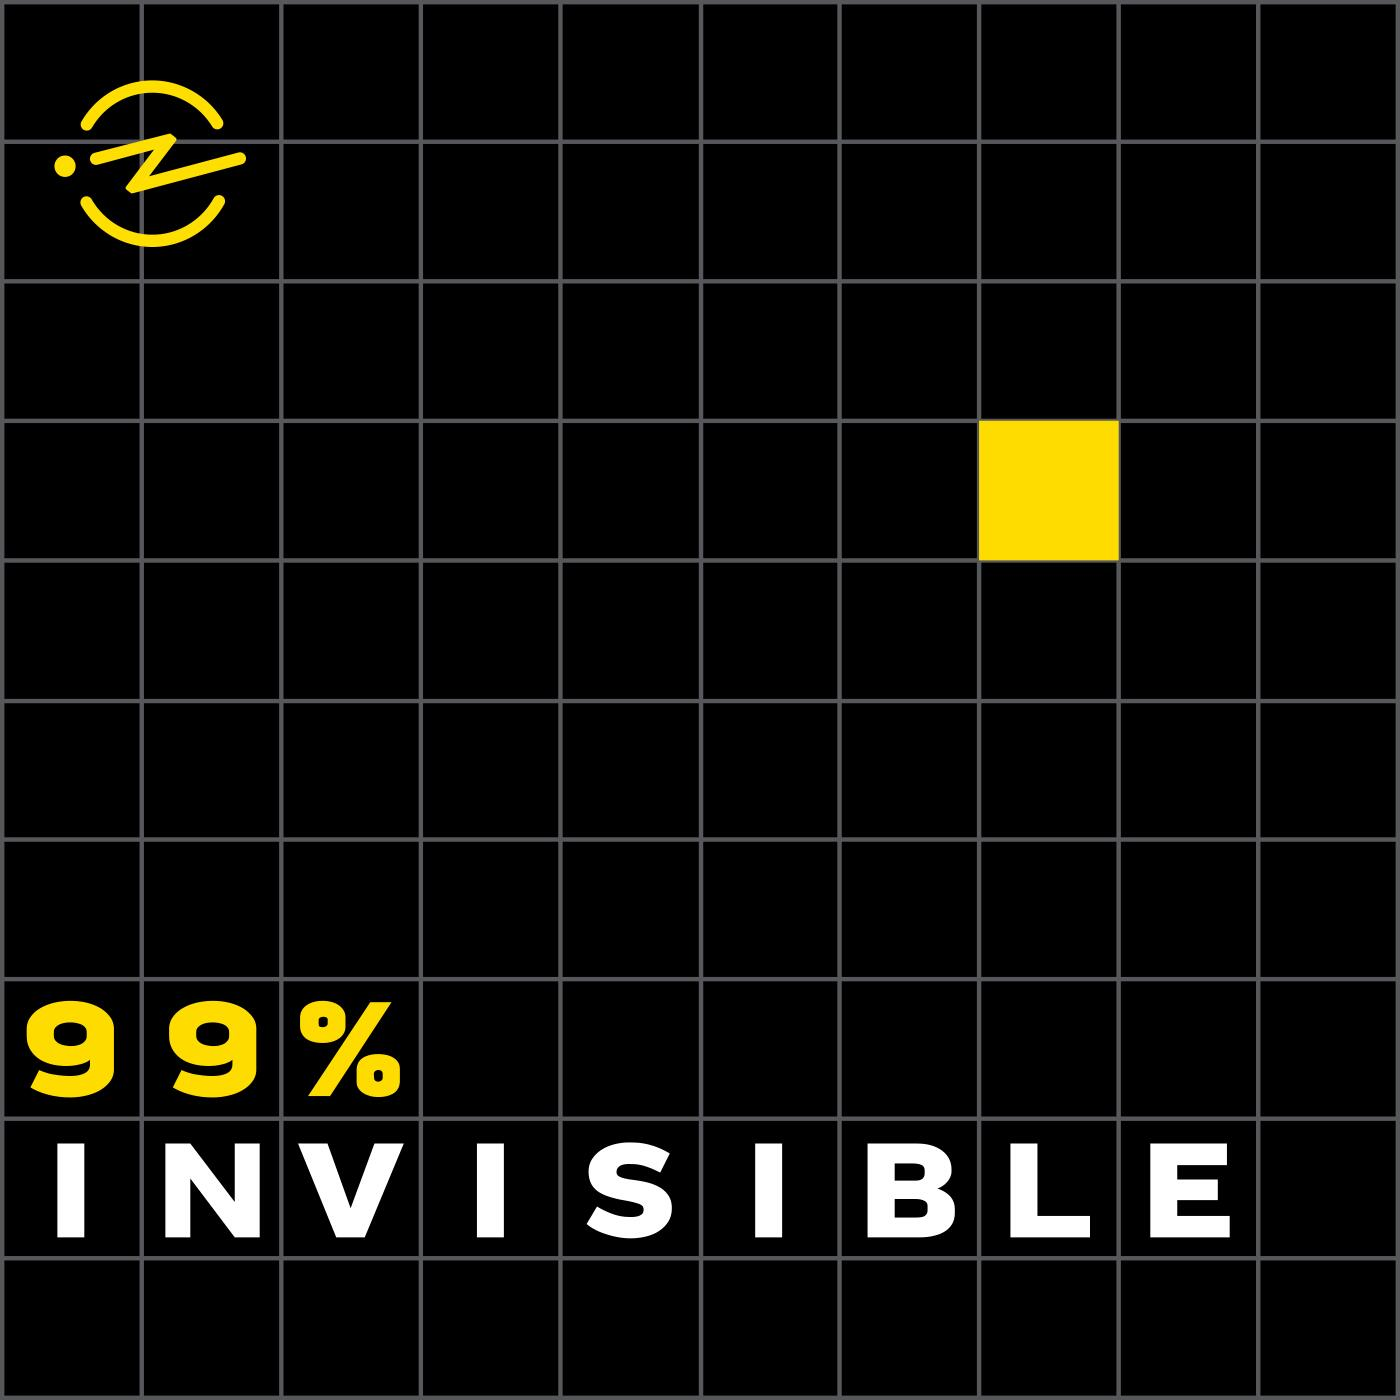 Listen to the 99% Invisible Episode - 396- This Day in Esoteric Political History on iHeartRadio | iHeartRadio